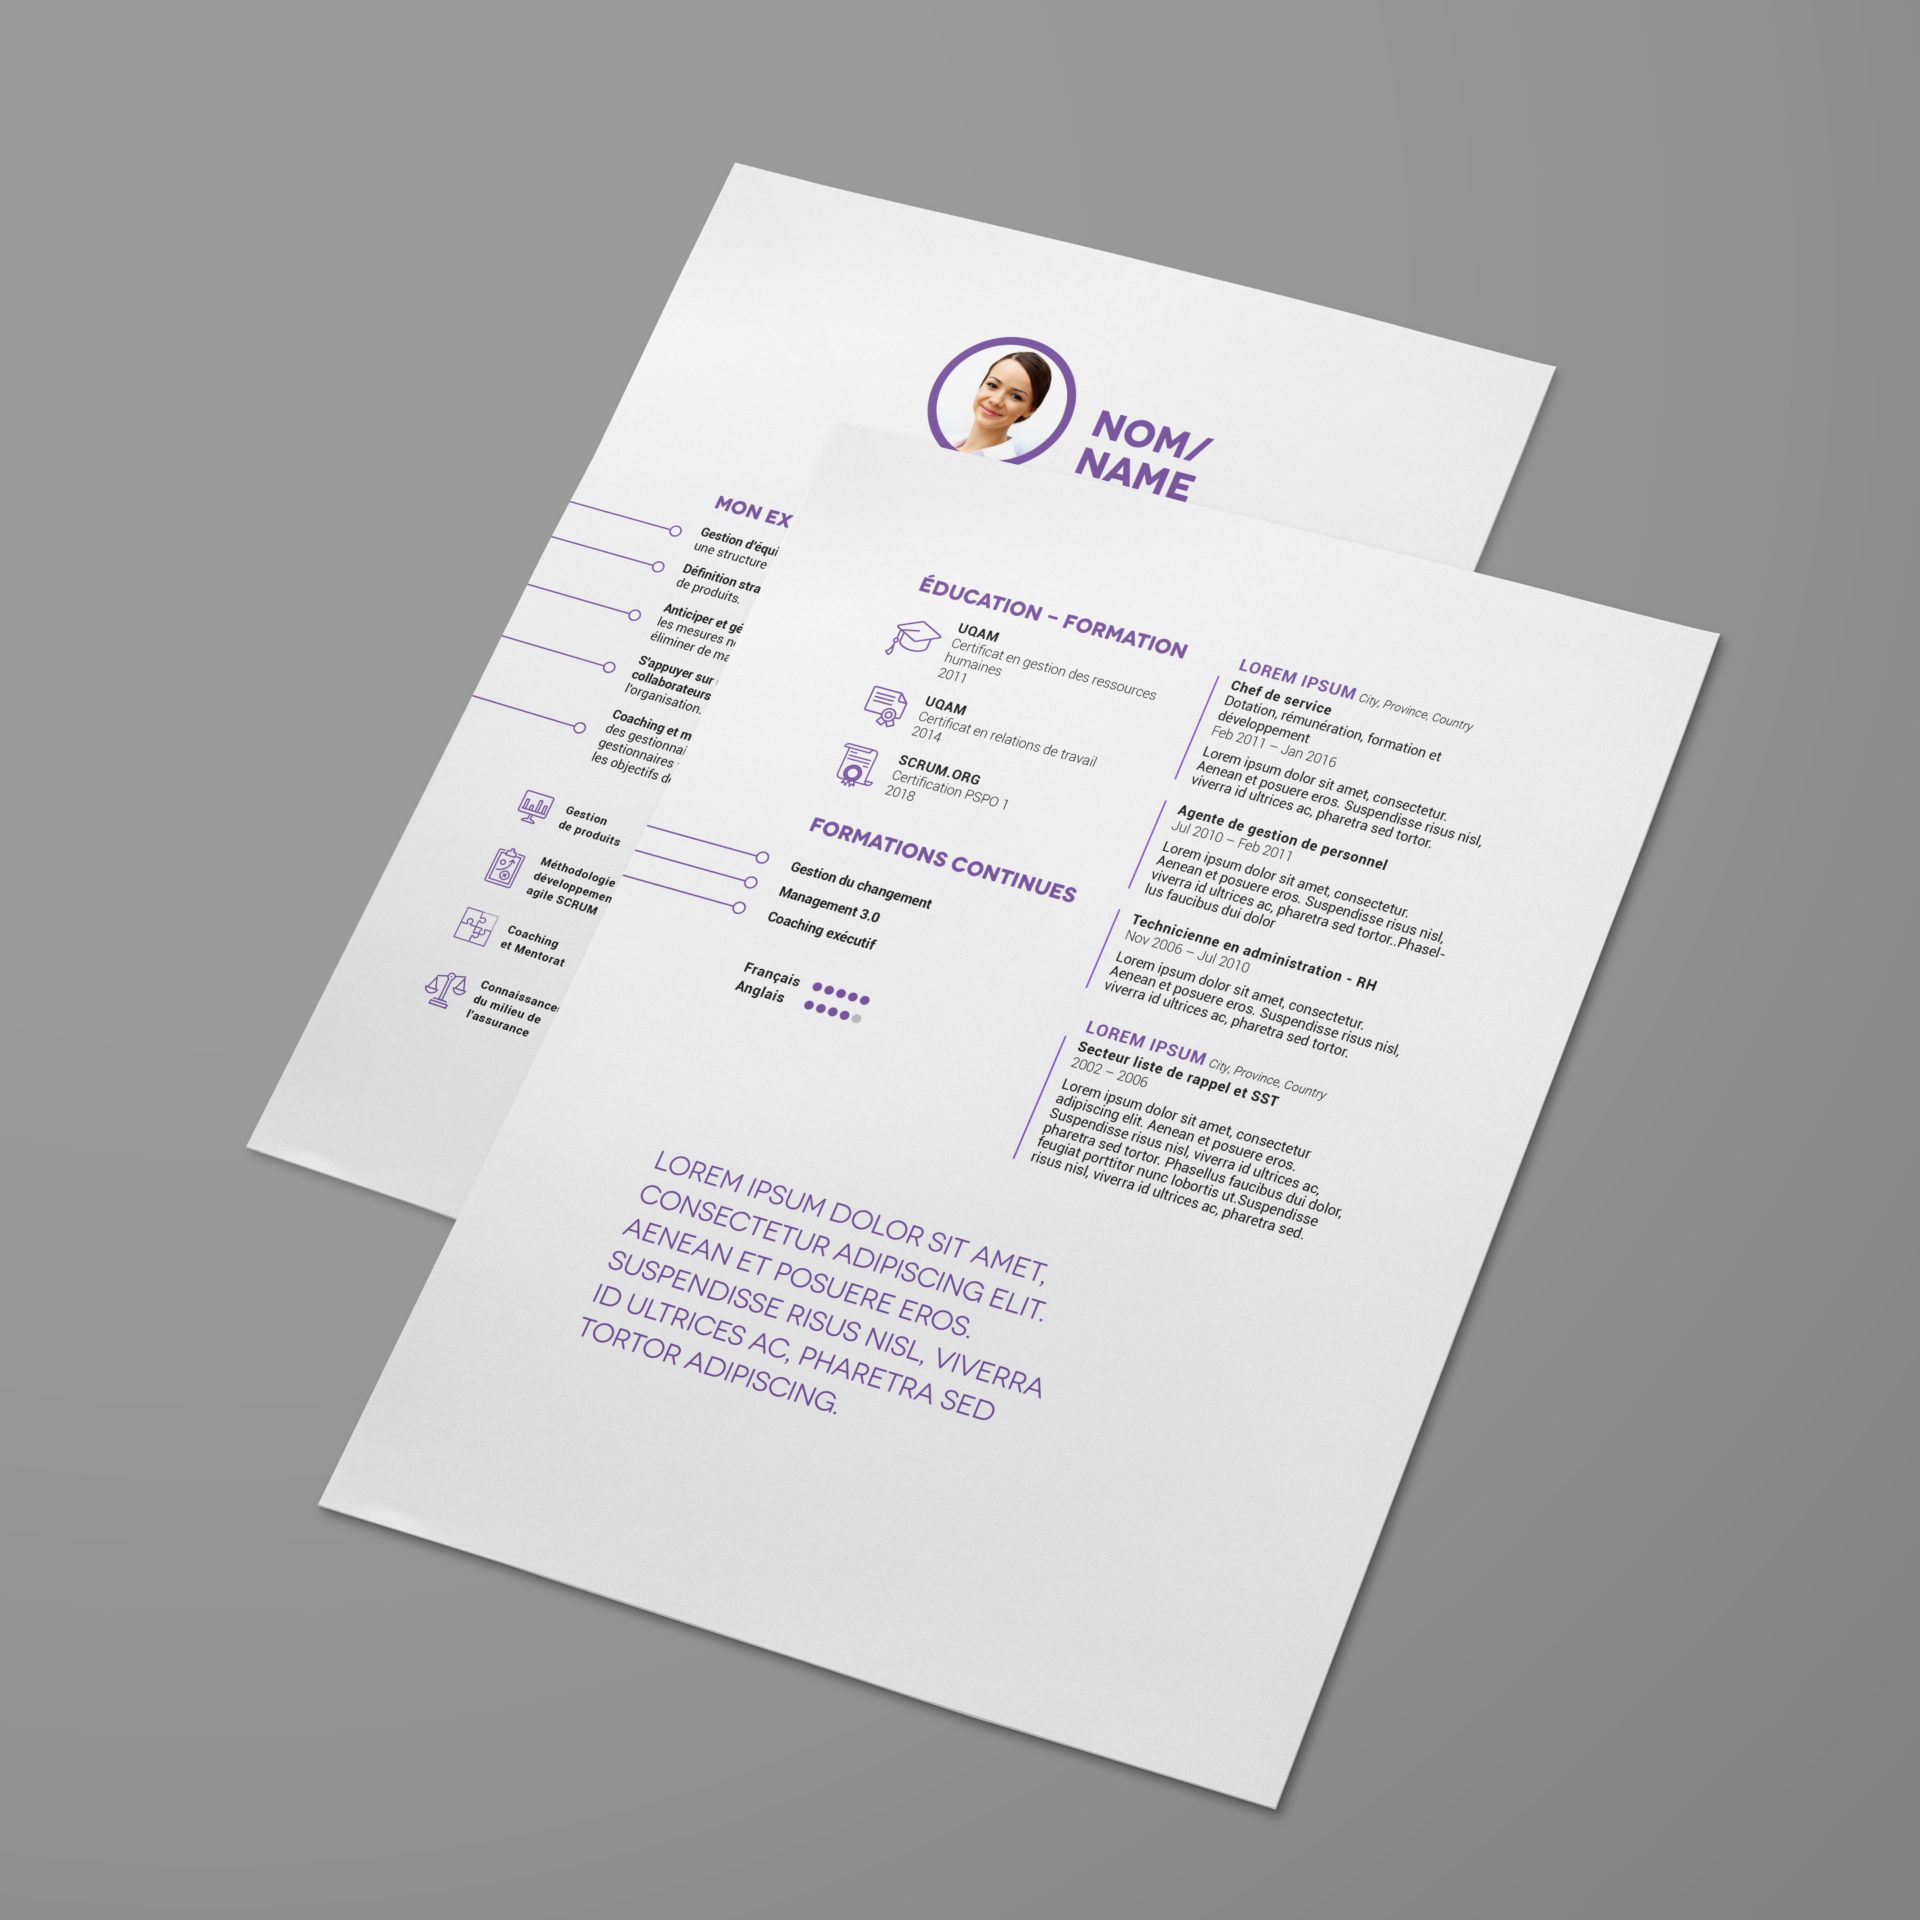 front and back of CV on white background with purple and black text.